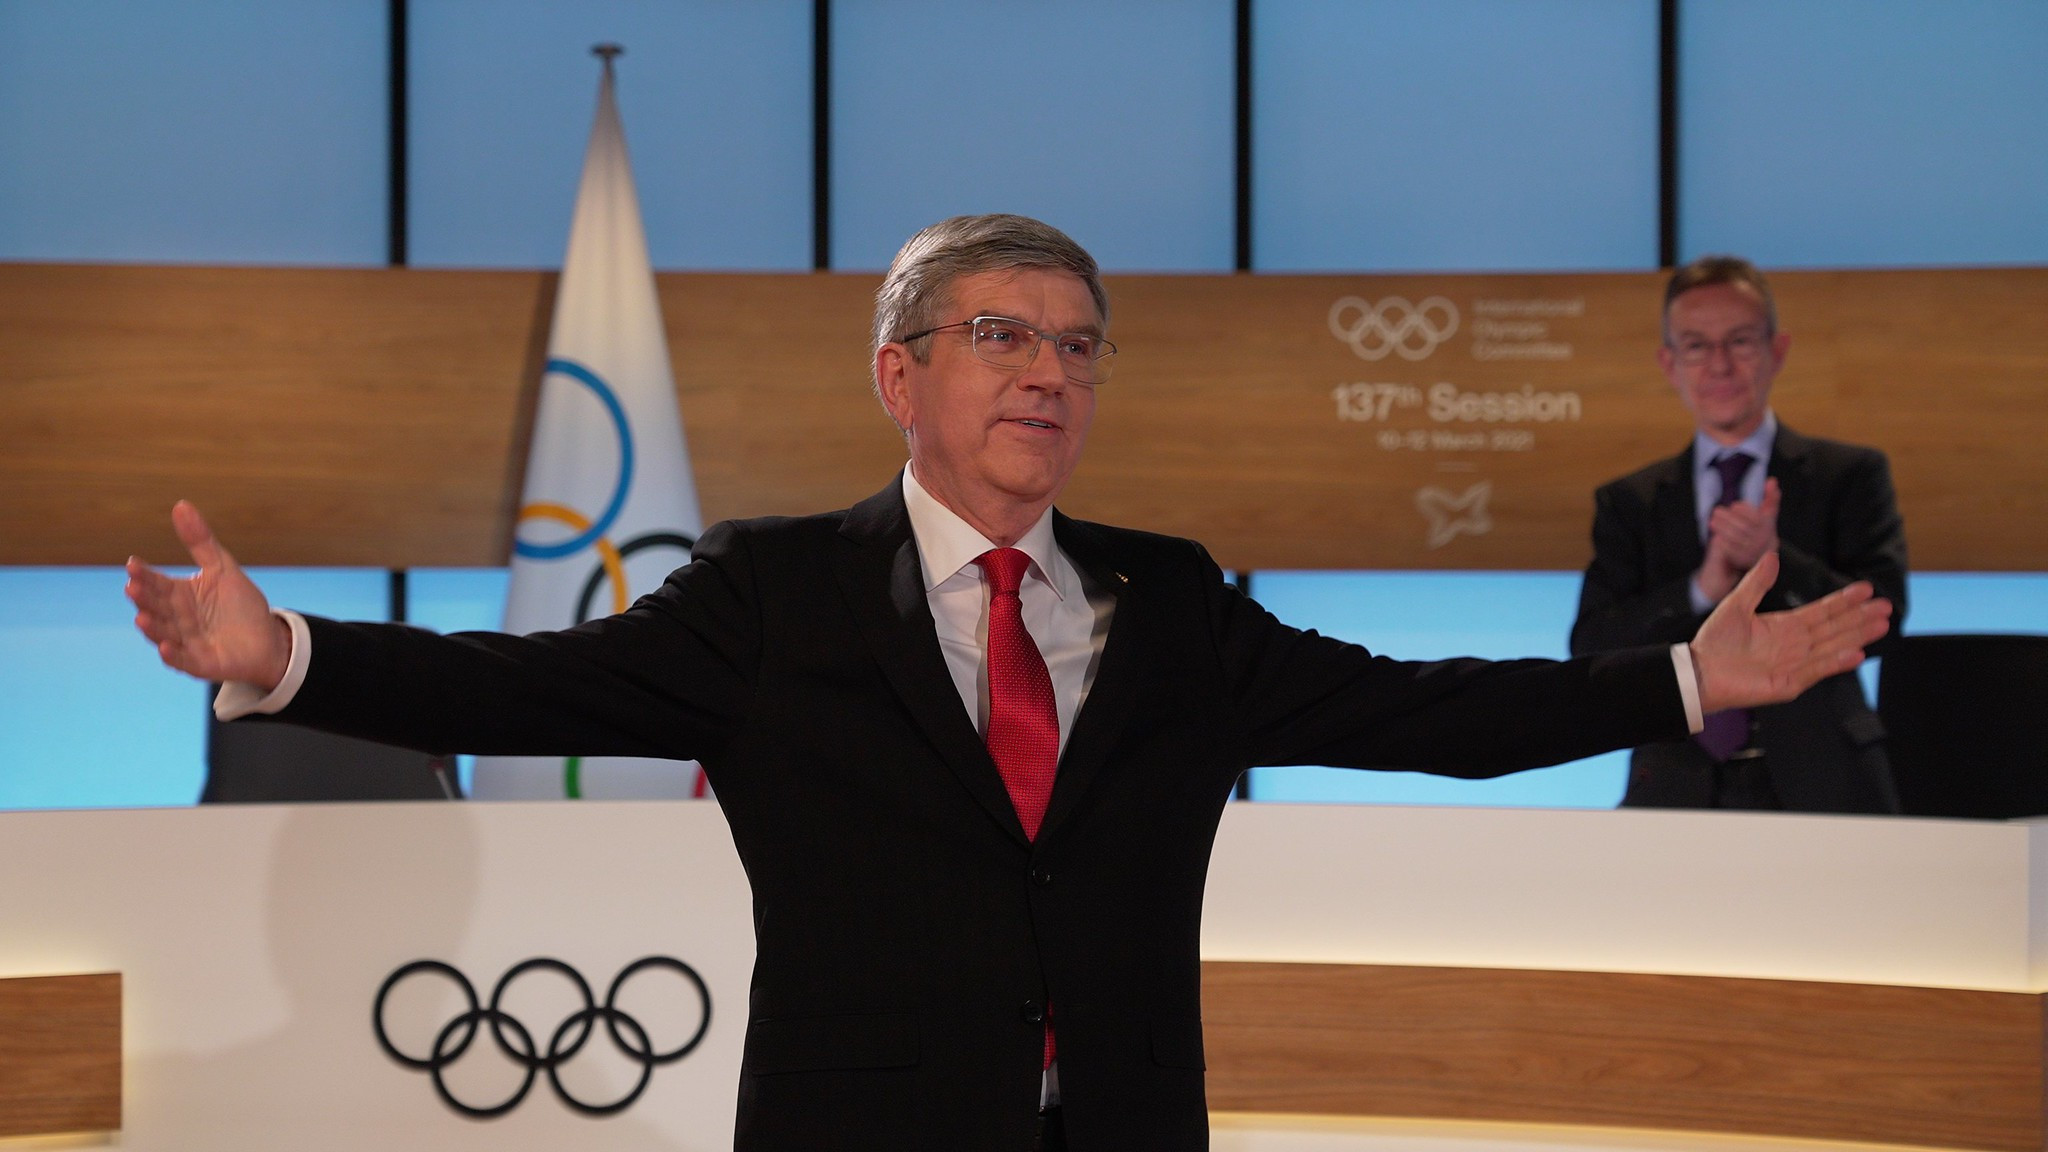 IOC President Thomas Bach called for an amendment to the Olympic motto following his re-election at today's virtual Session ©IOC